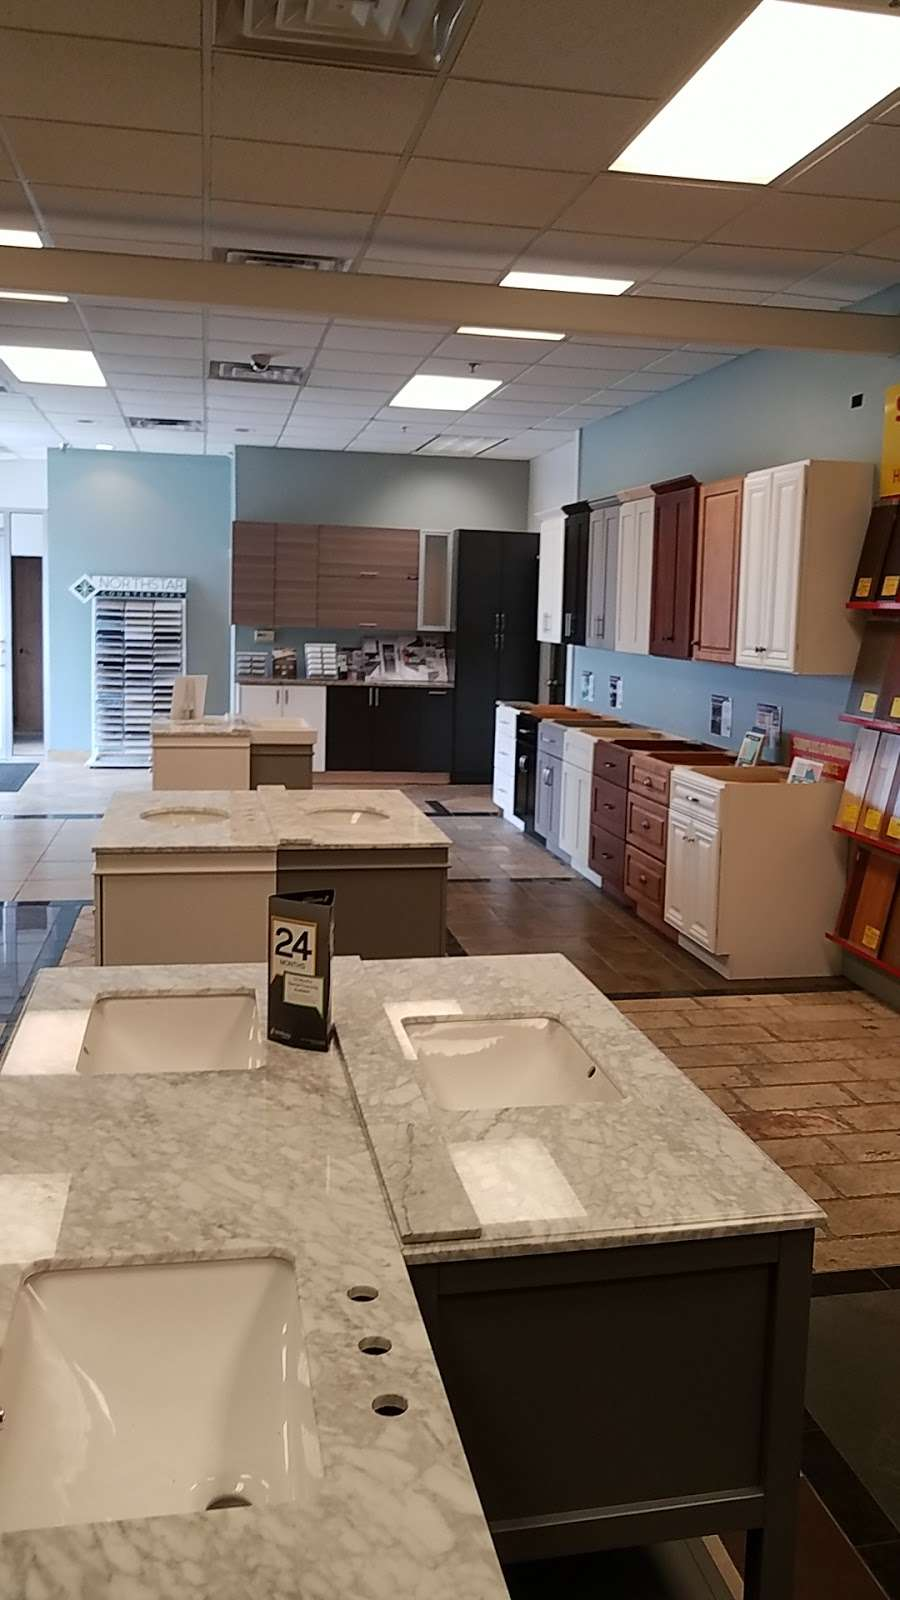 Cabinets To Go - Kearny - furniture store  | Photo 6 of 10 | Address: 22 Sandford Ave, Kearny, NJ 07032, USA | Phone: (201) 622-0180